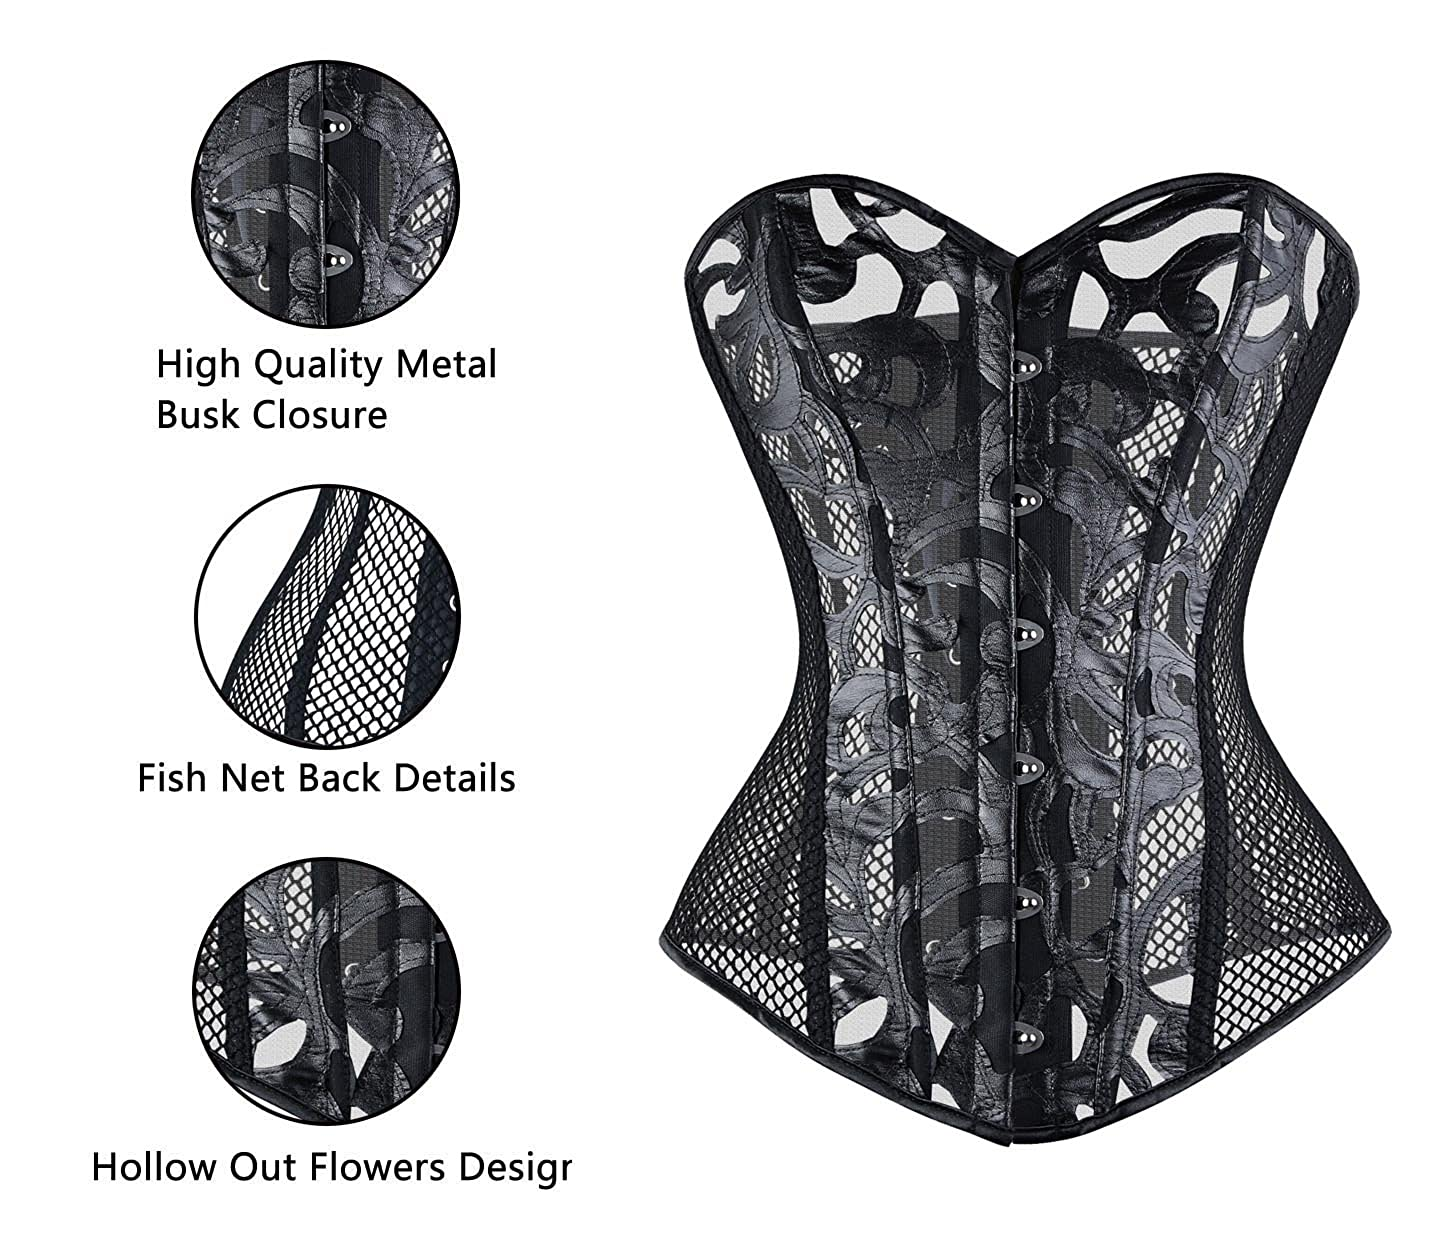 7949c94a6f6 Charmian Women s Gothic Punk Sexy Mesh Overbust Corset Bustier Body  Shapewear at Amazon Women s Clothing store